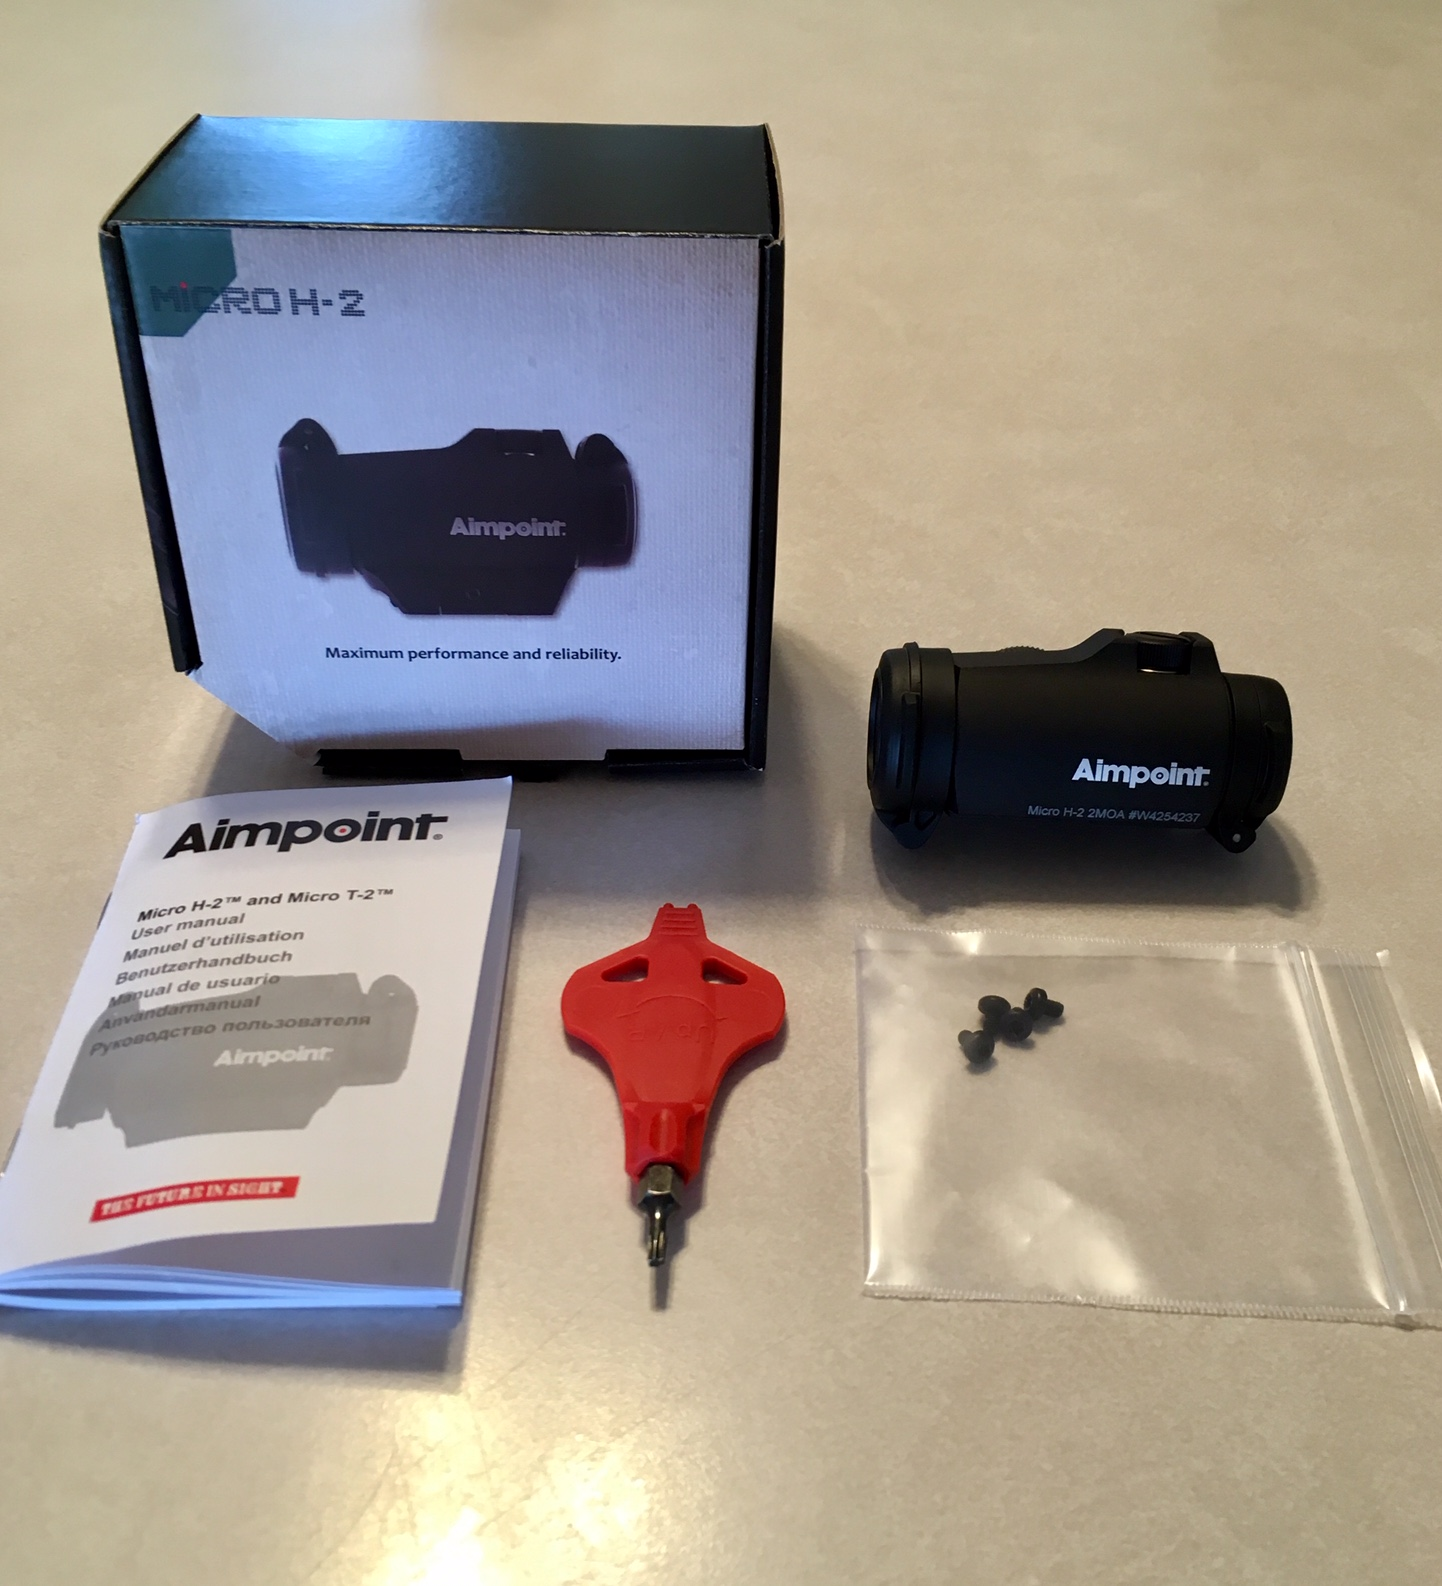 WTS: Aimpoint Micro H-2, 2 MOA, Full factory package without mount (Model 200186) New-ap1.jpg